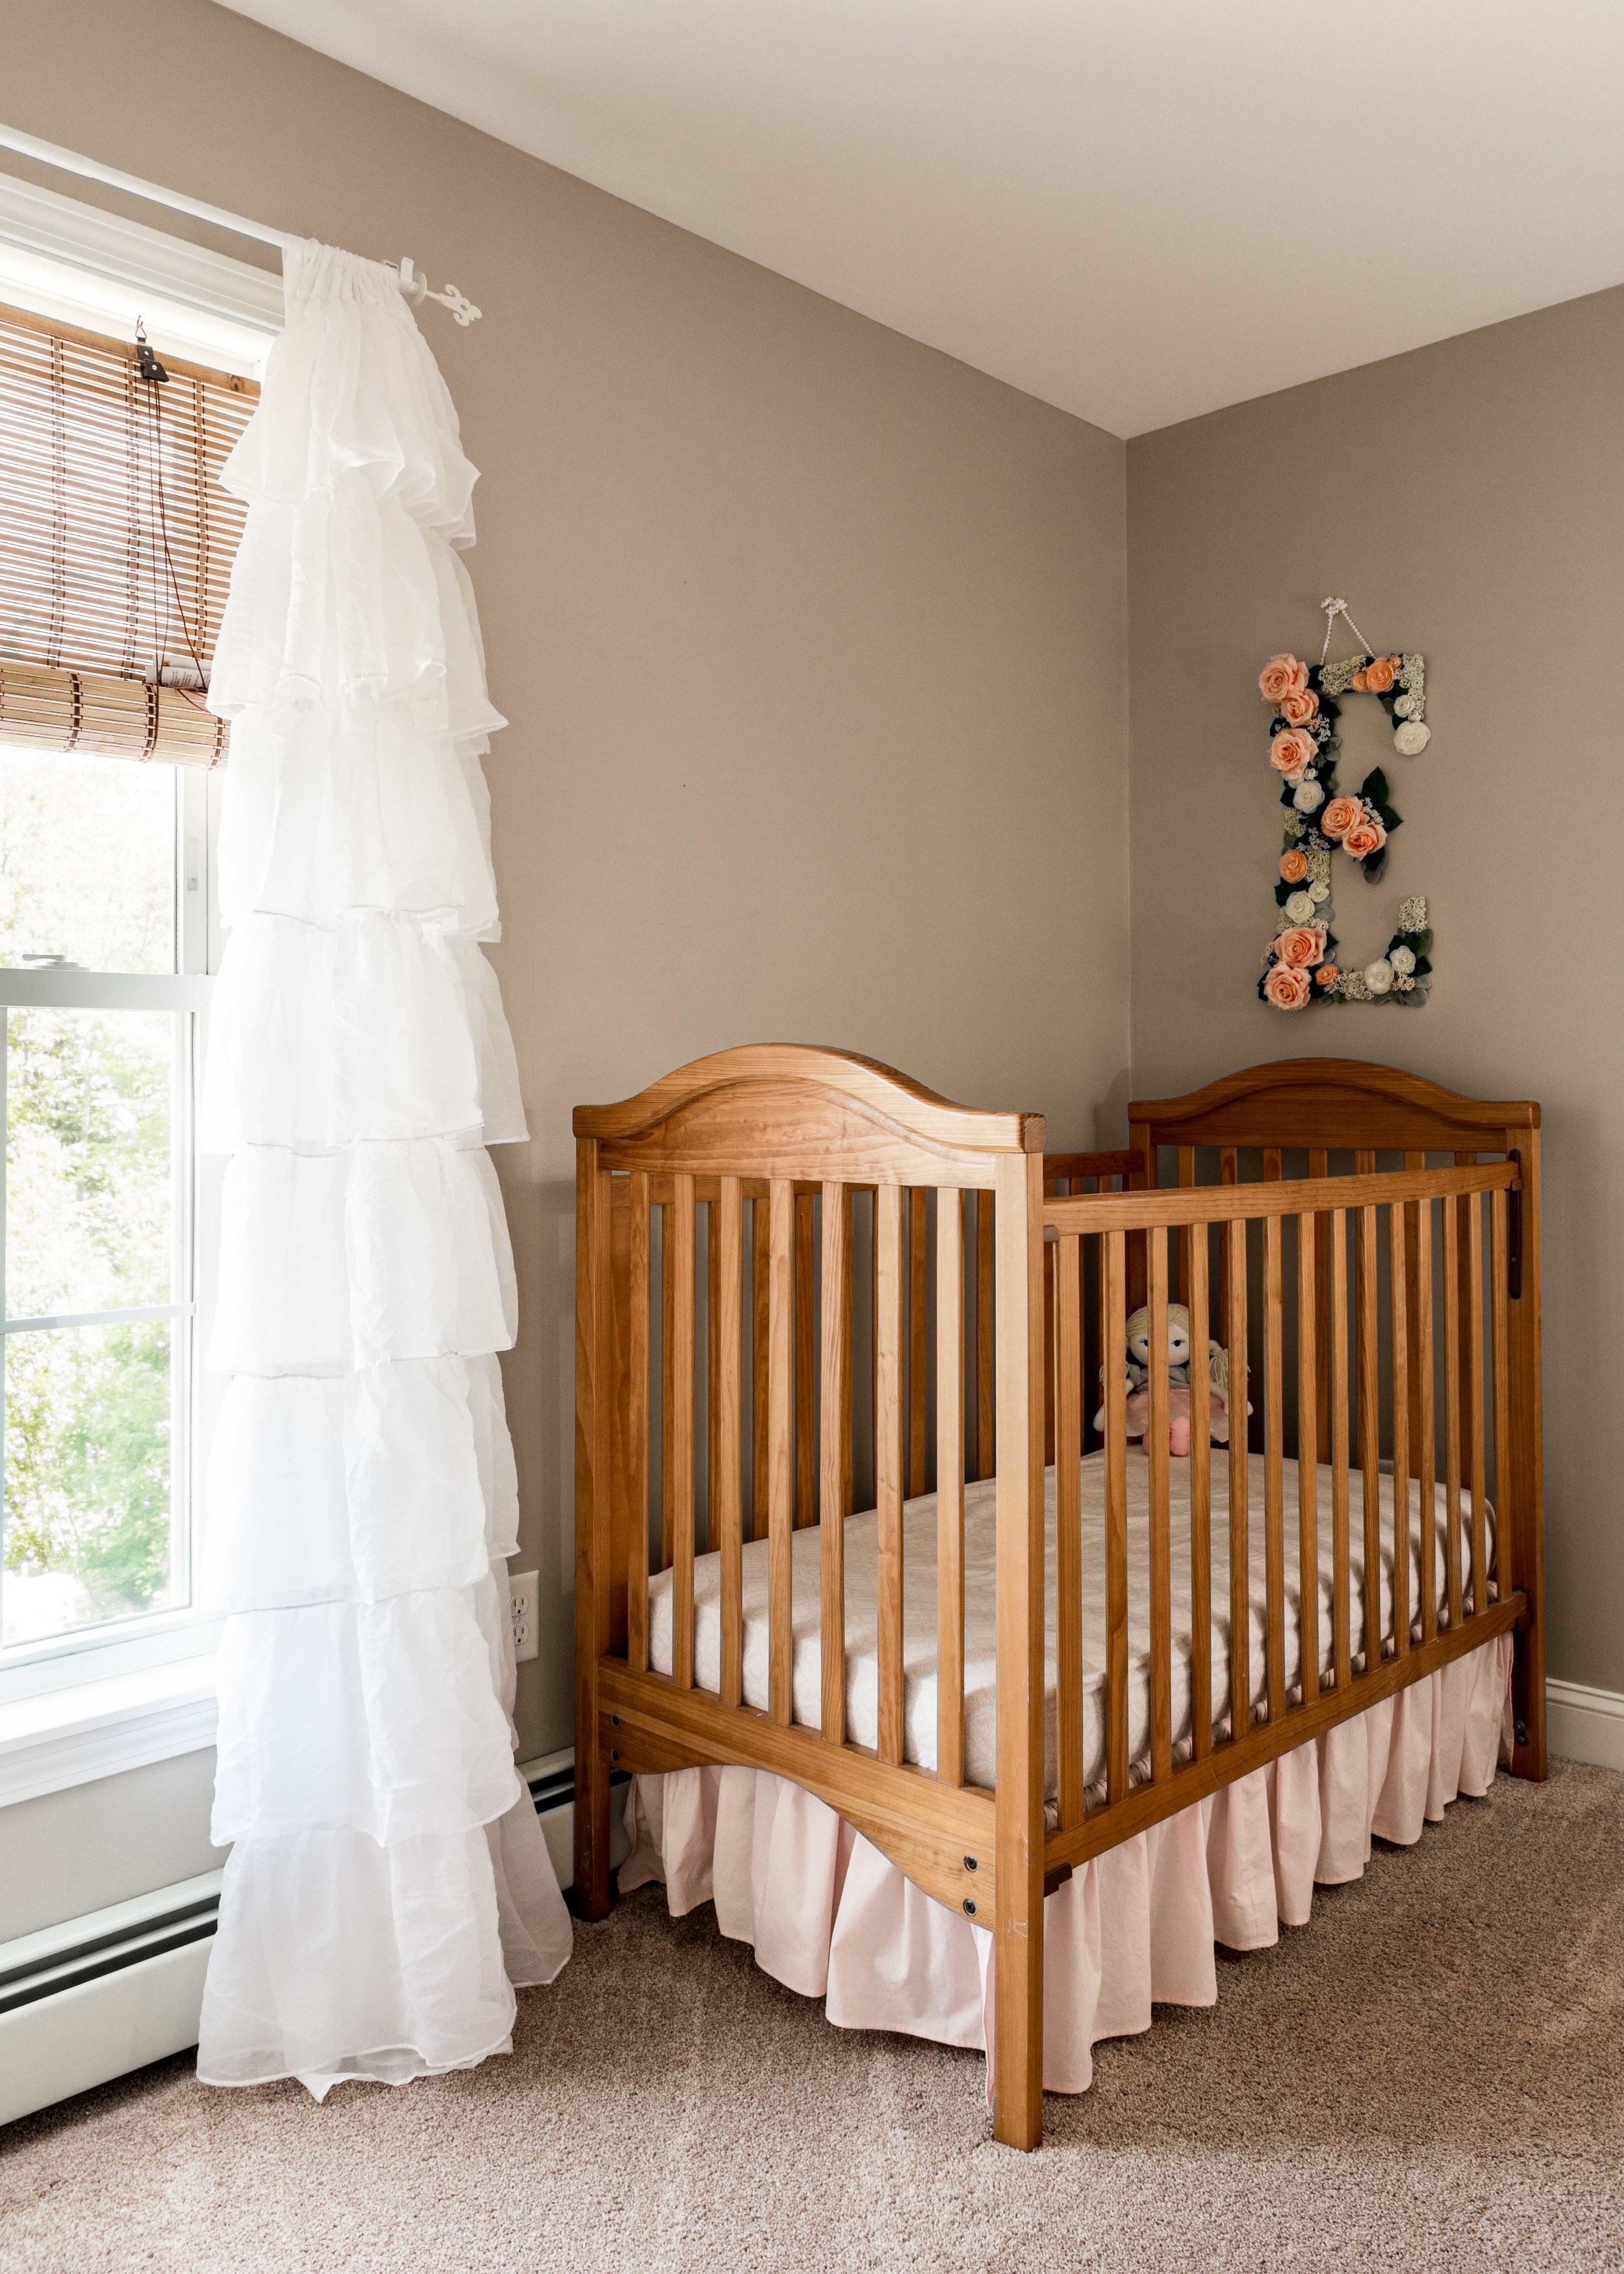 Sackcloth  from Sherwin Williams was used in the nursery and the master bedroom.